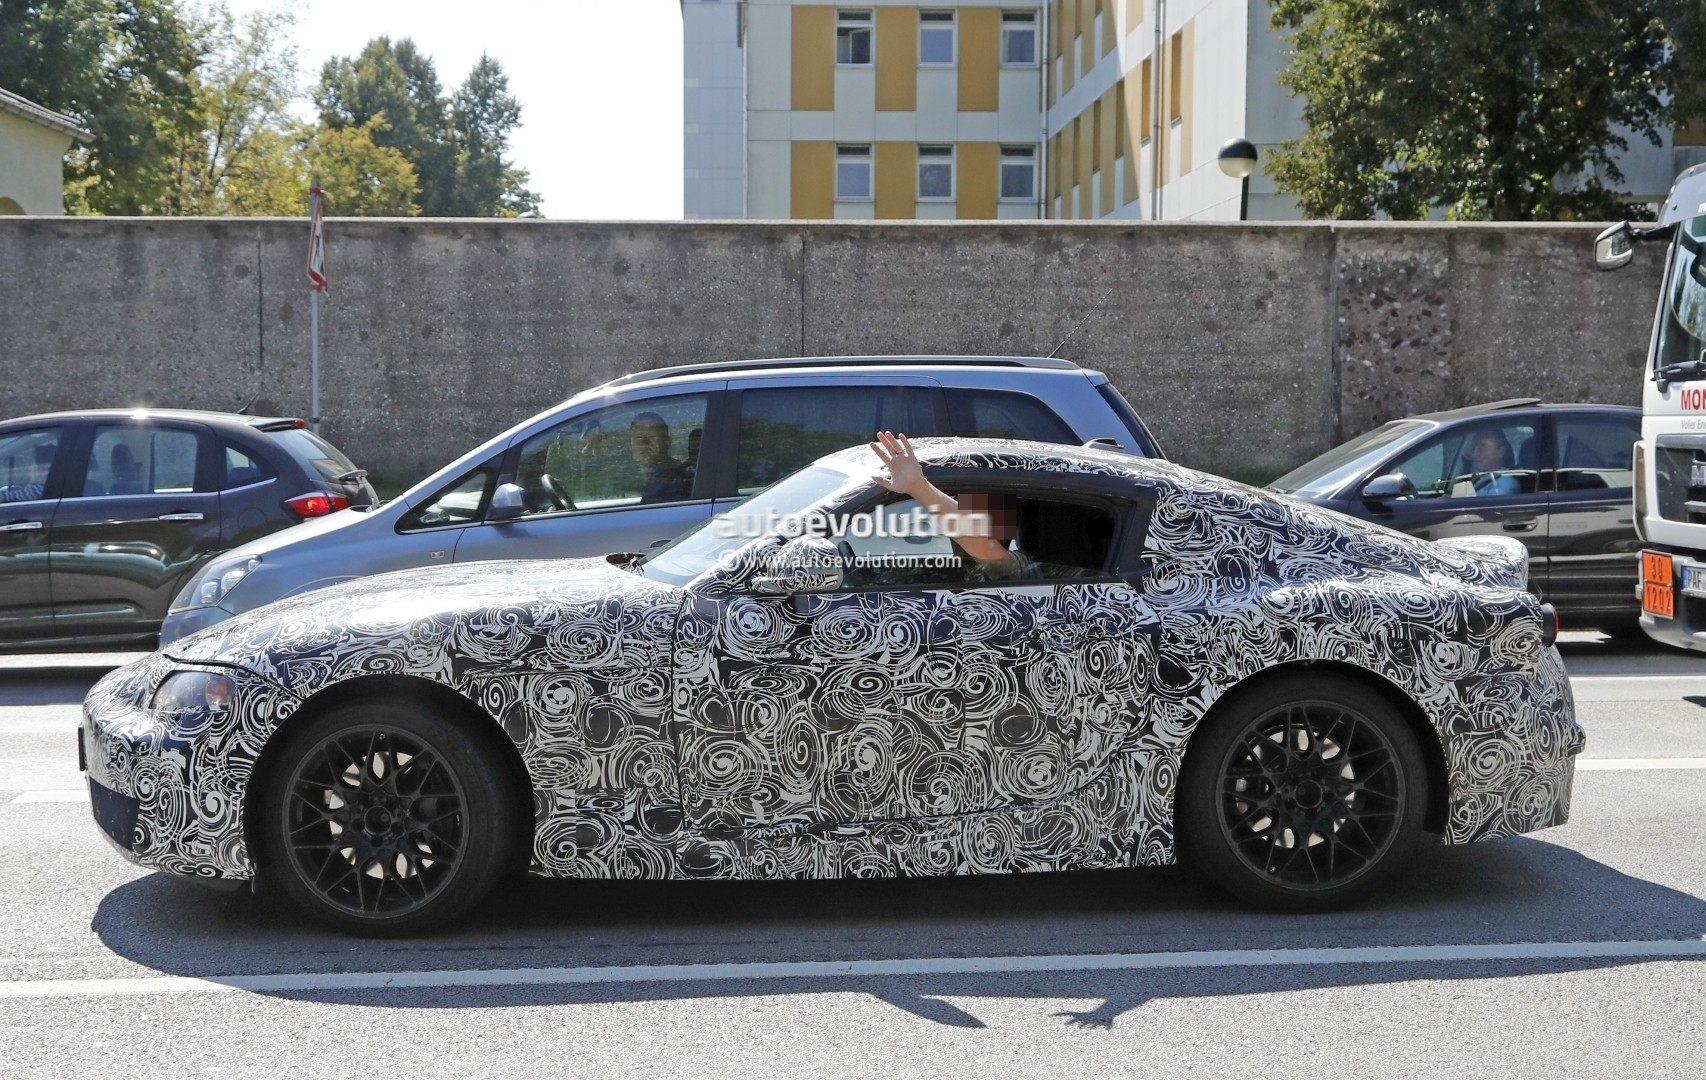 new 2018 toyota supra makes spyshot debut coupe prototype shows bmw interior autoevolution. Black Bedroom Furniture Sets. Home Design Ideas